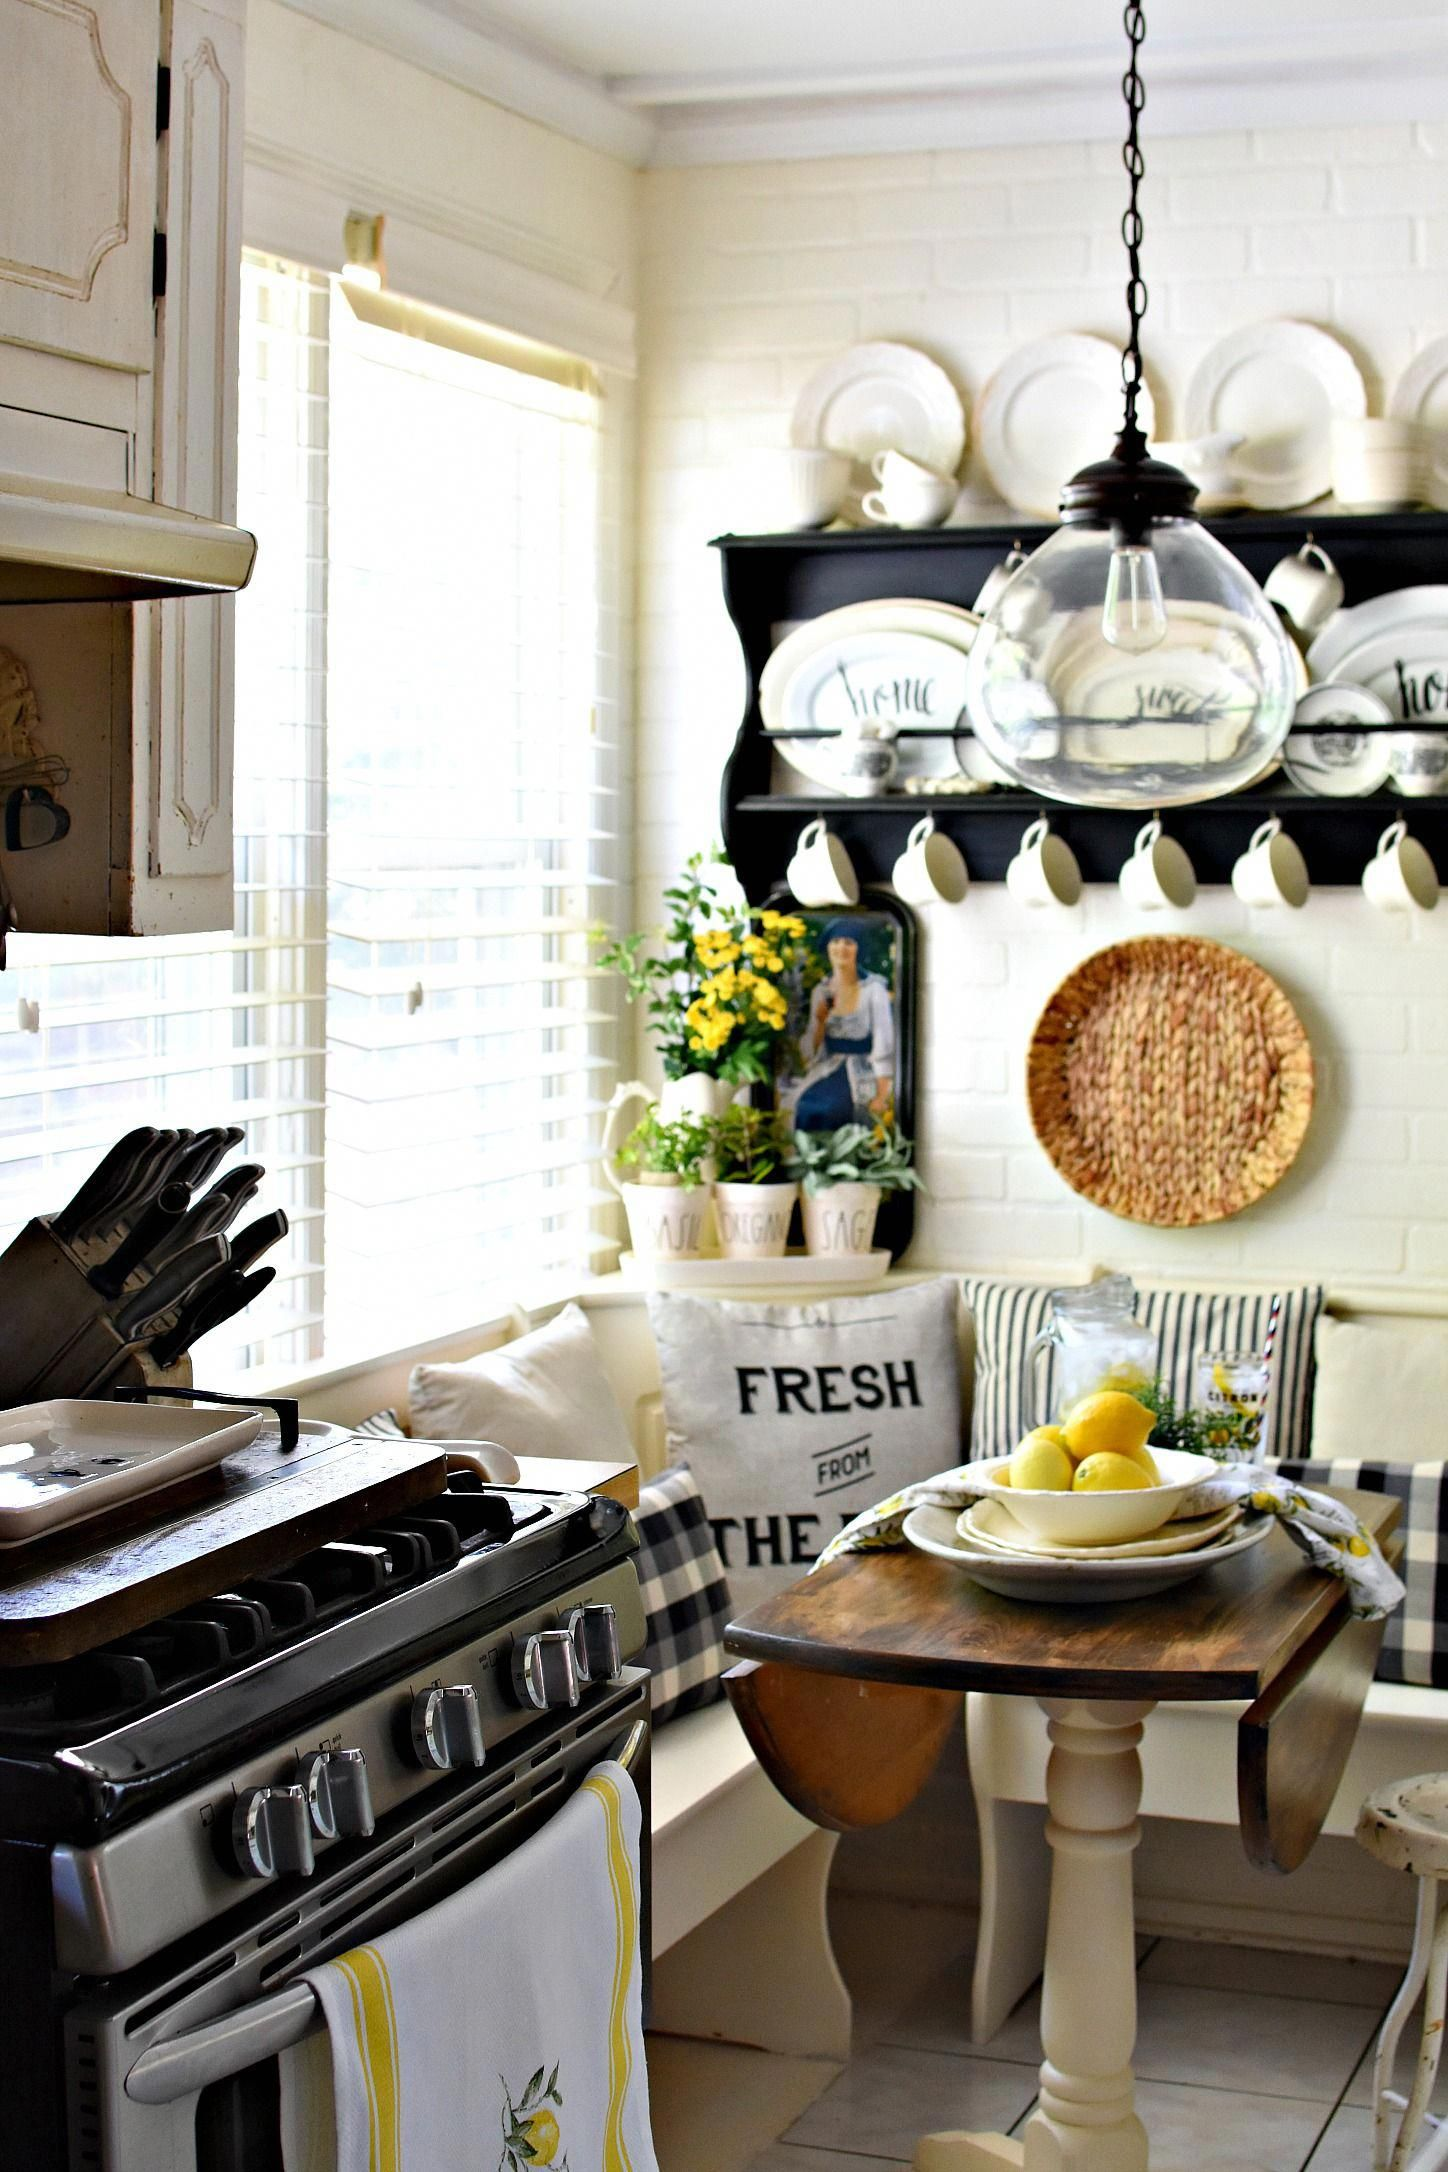 farmhouse kitchen decorating ideas for summer lemons decorating with lemons black and white on farmhouse kitchen black and white id=60687